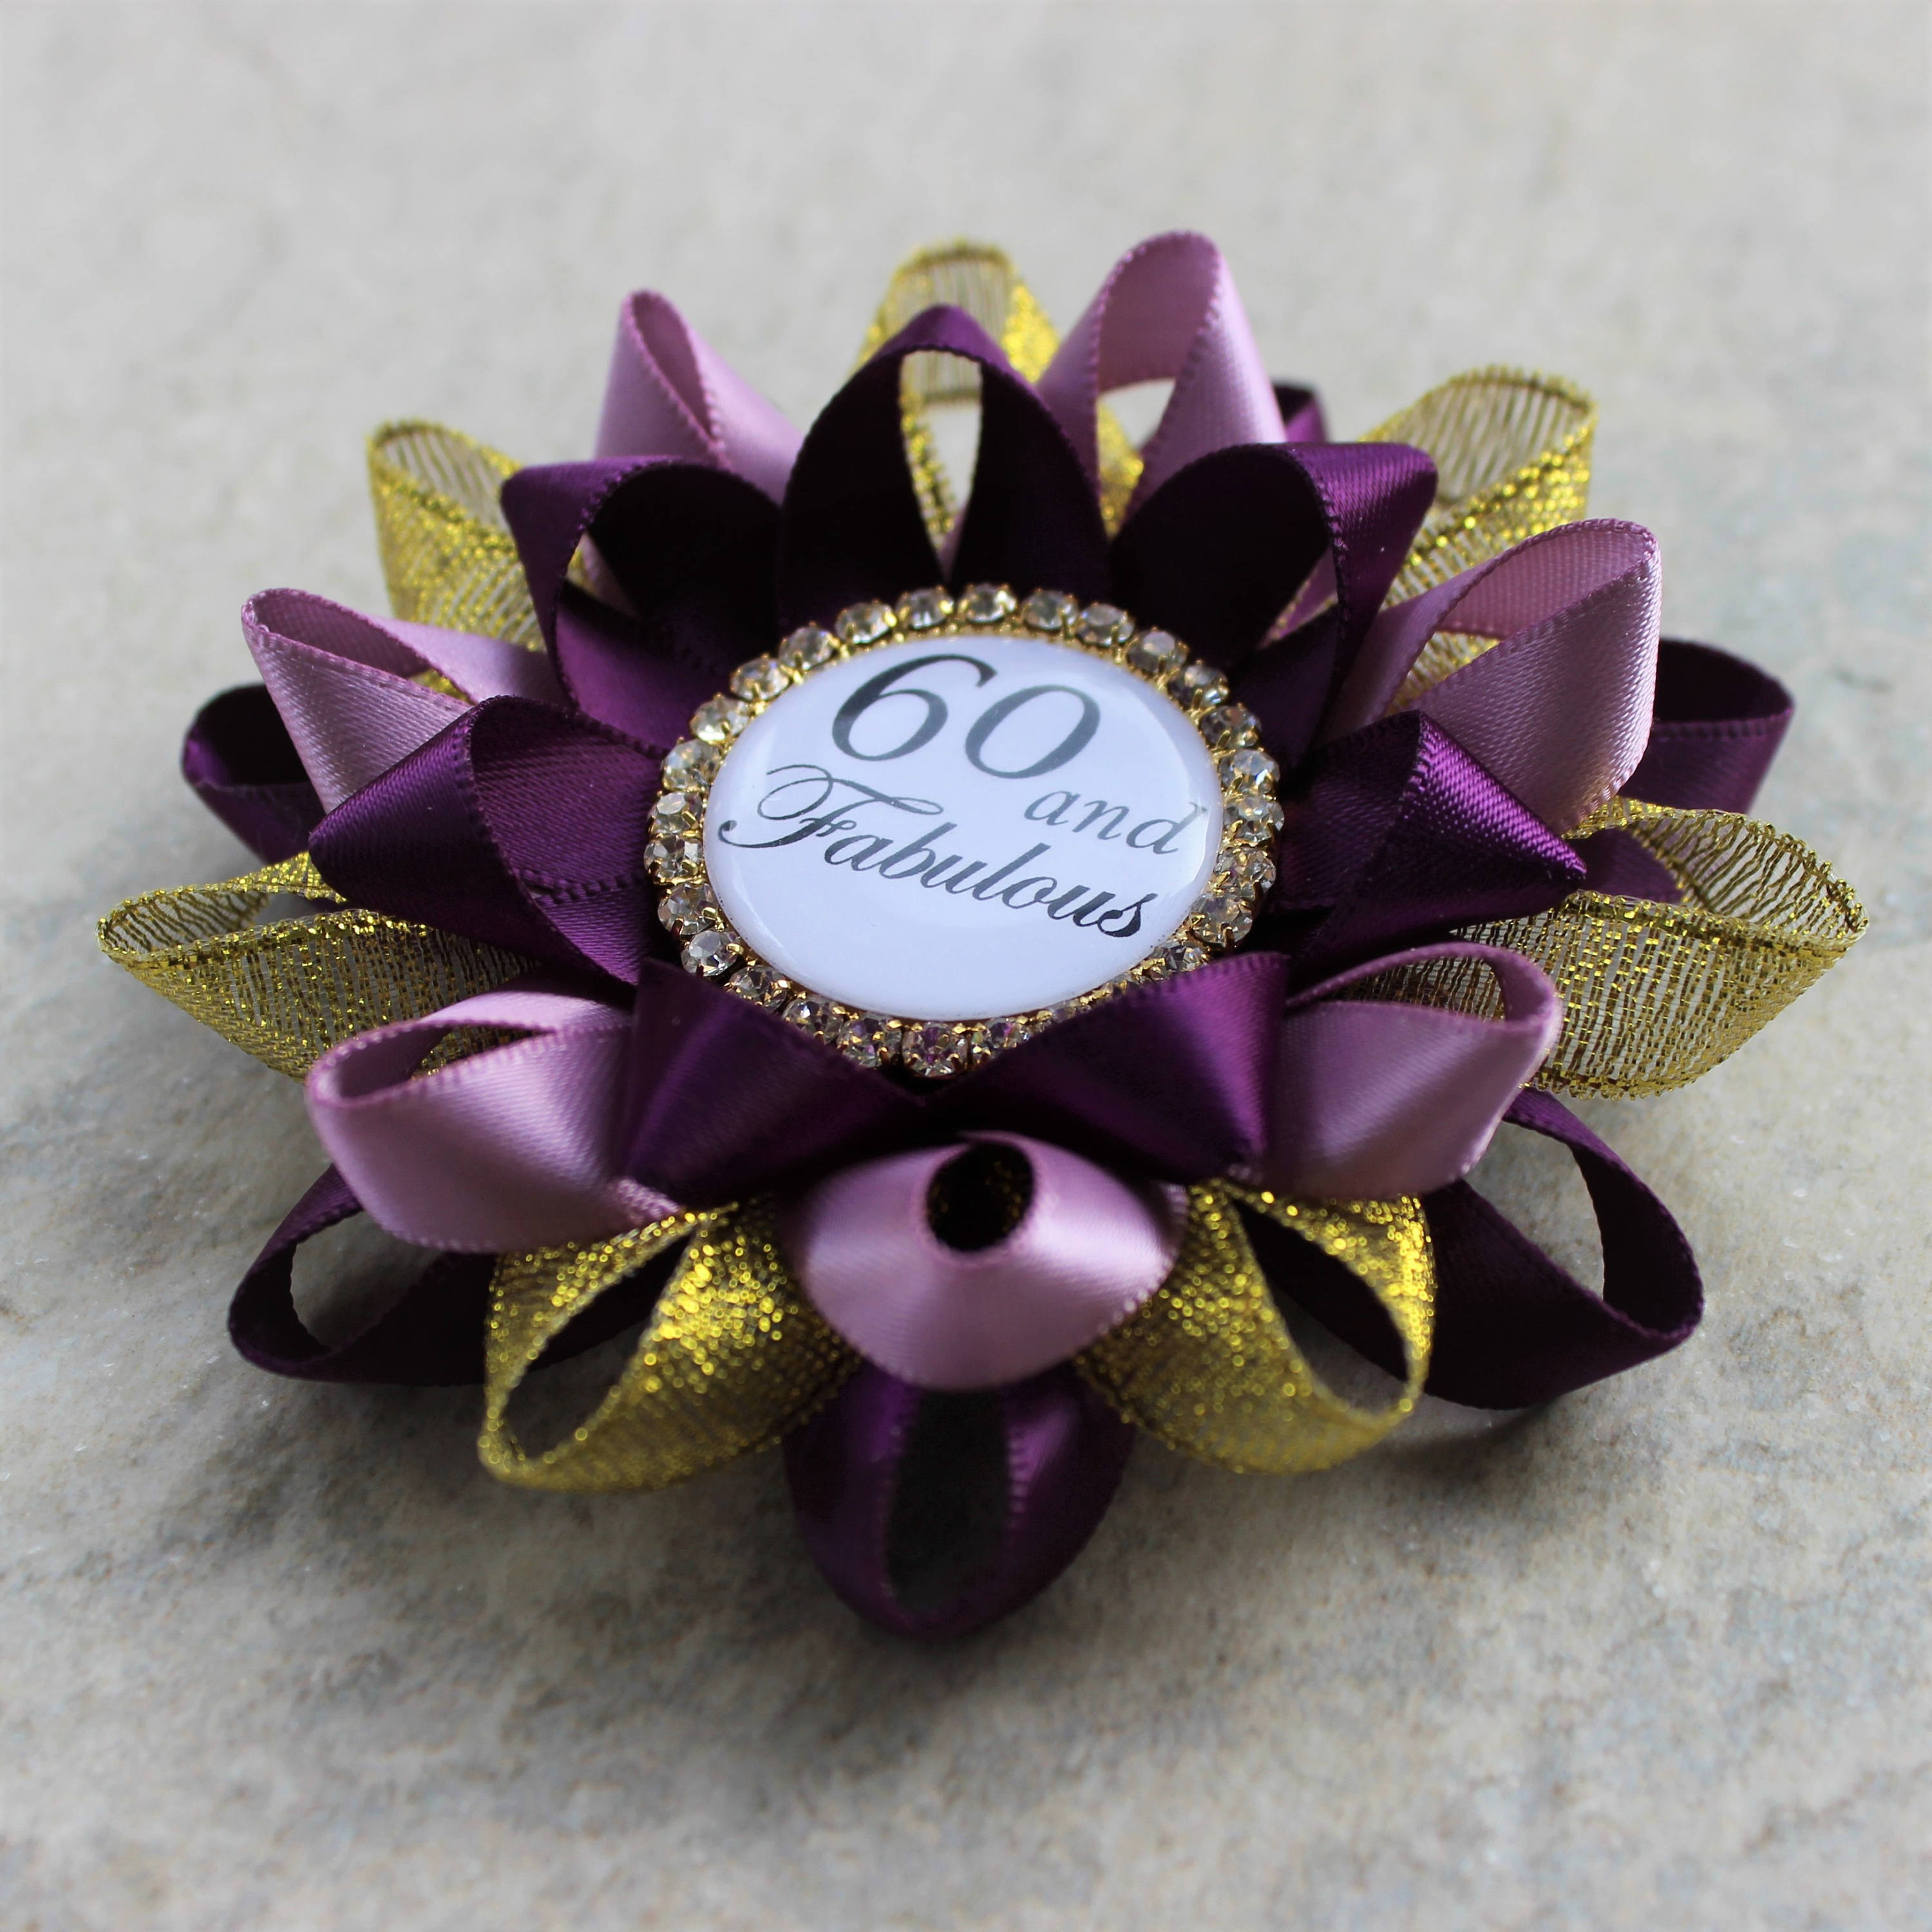 60th Birthday Gifts For Women Pin Gift